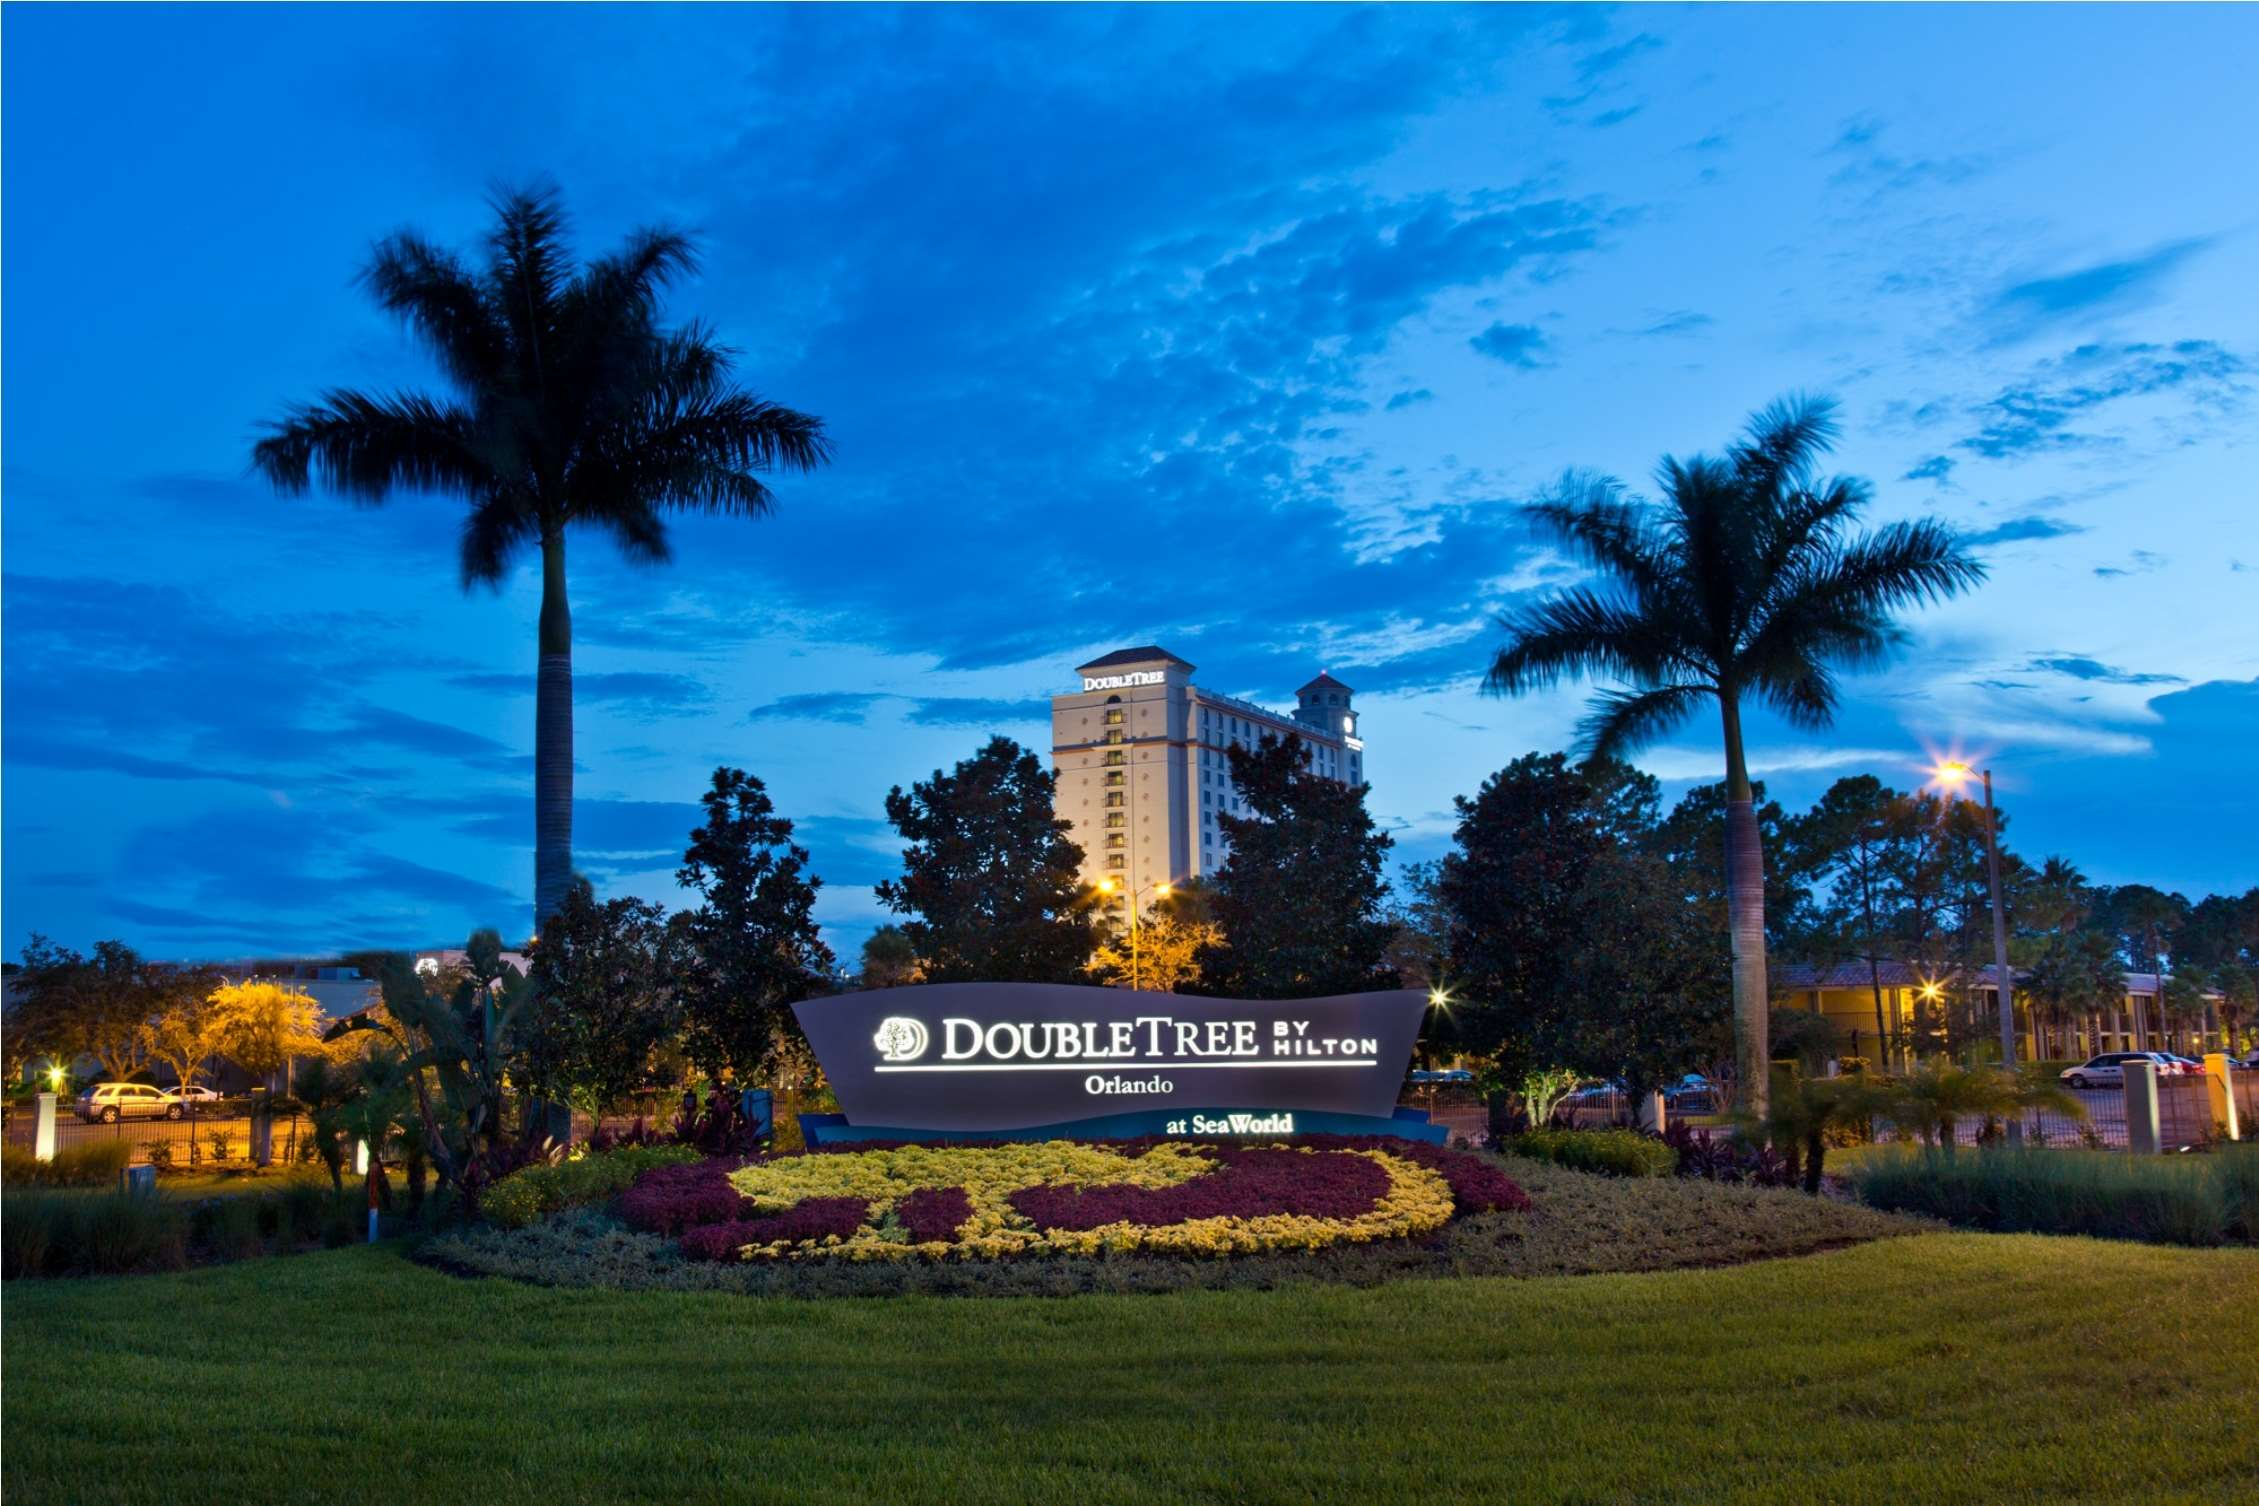 DoubleTree by Hilton Hotel Orlando at SeaWorld image 5